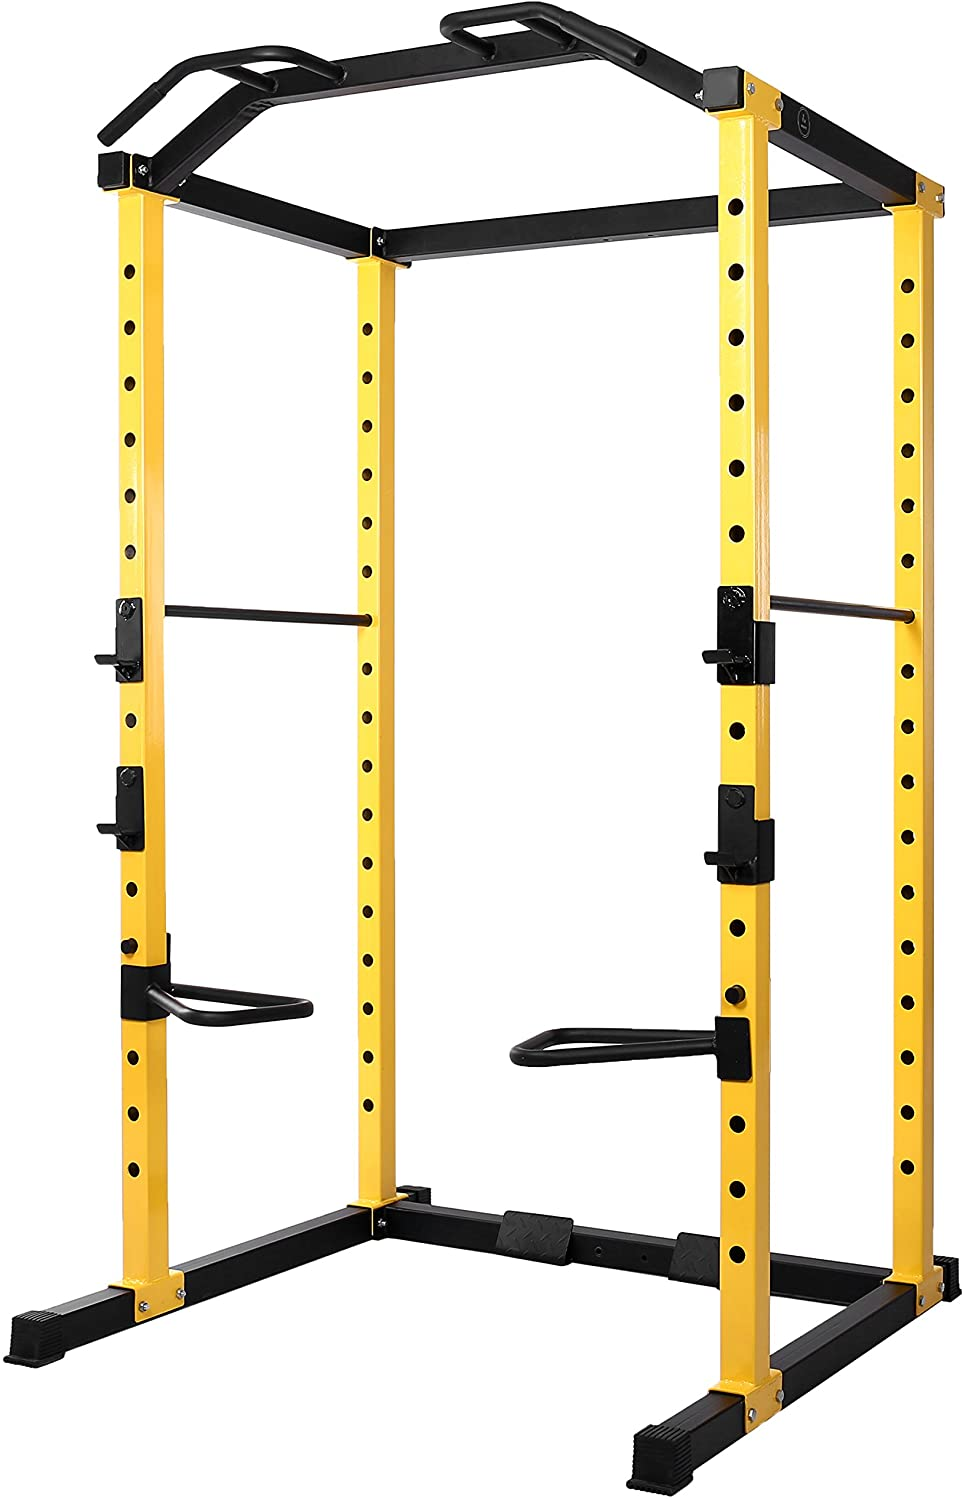 HulkFit power cage with complimentary dip bars